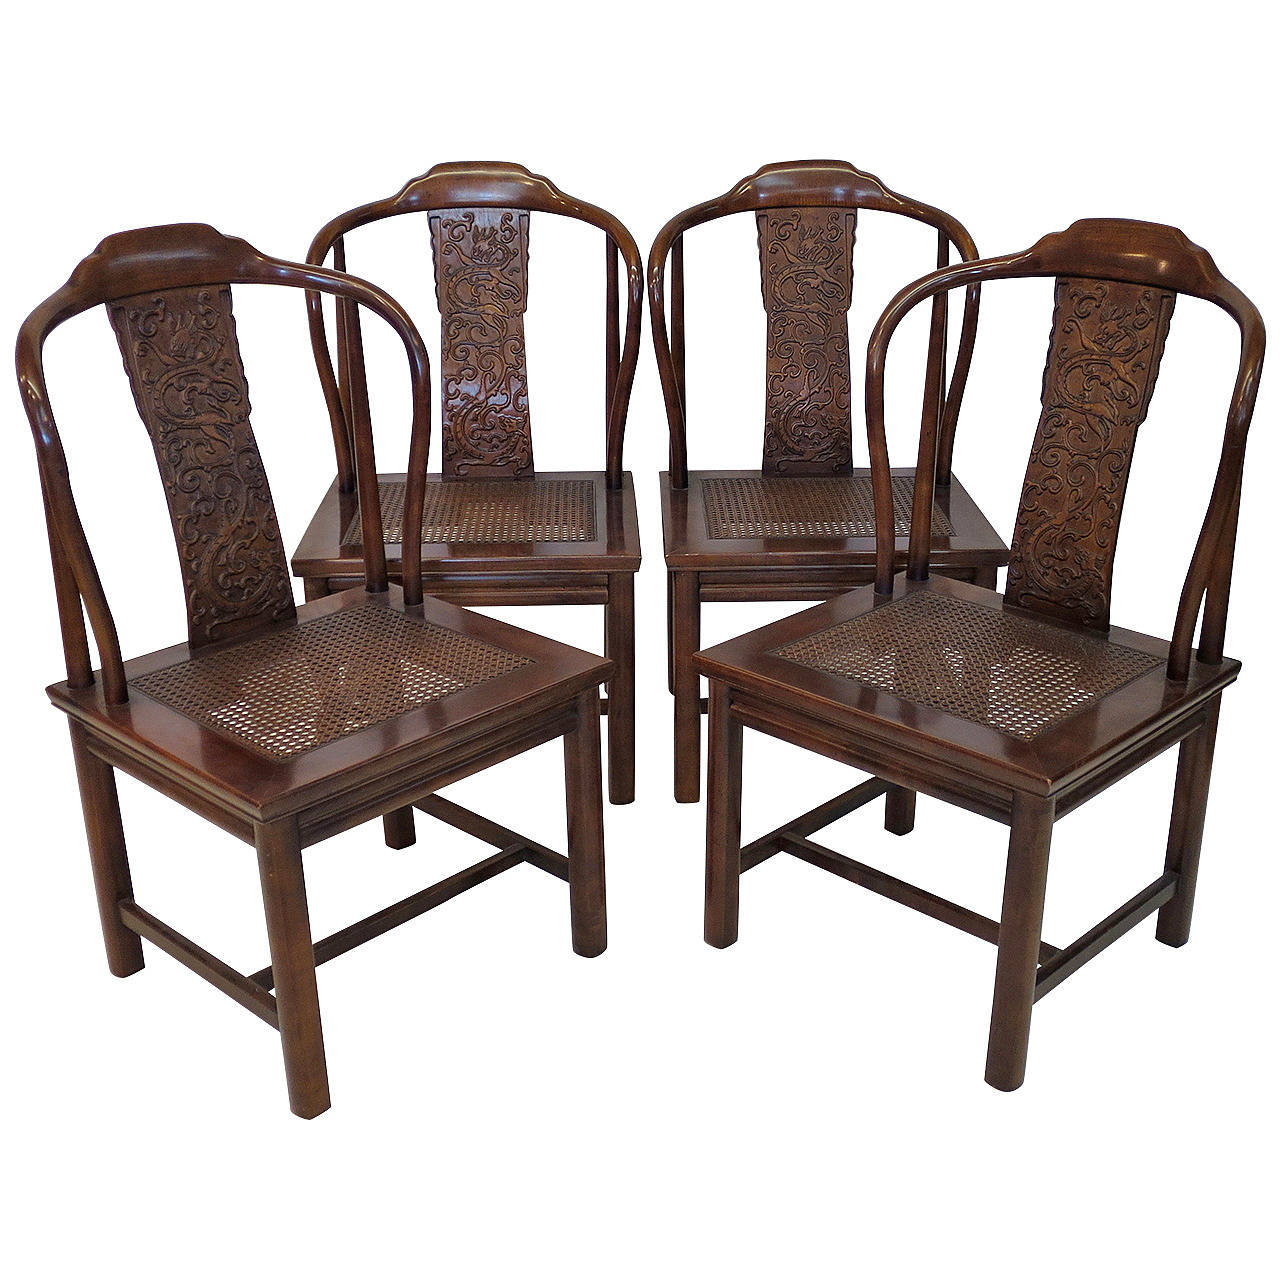 henredon asian dining chairs white lounge chair for bedroom set of four inspired by furniture at